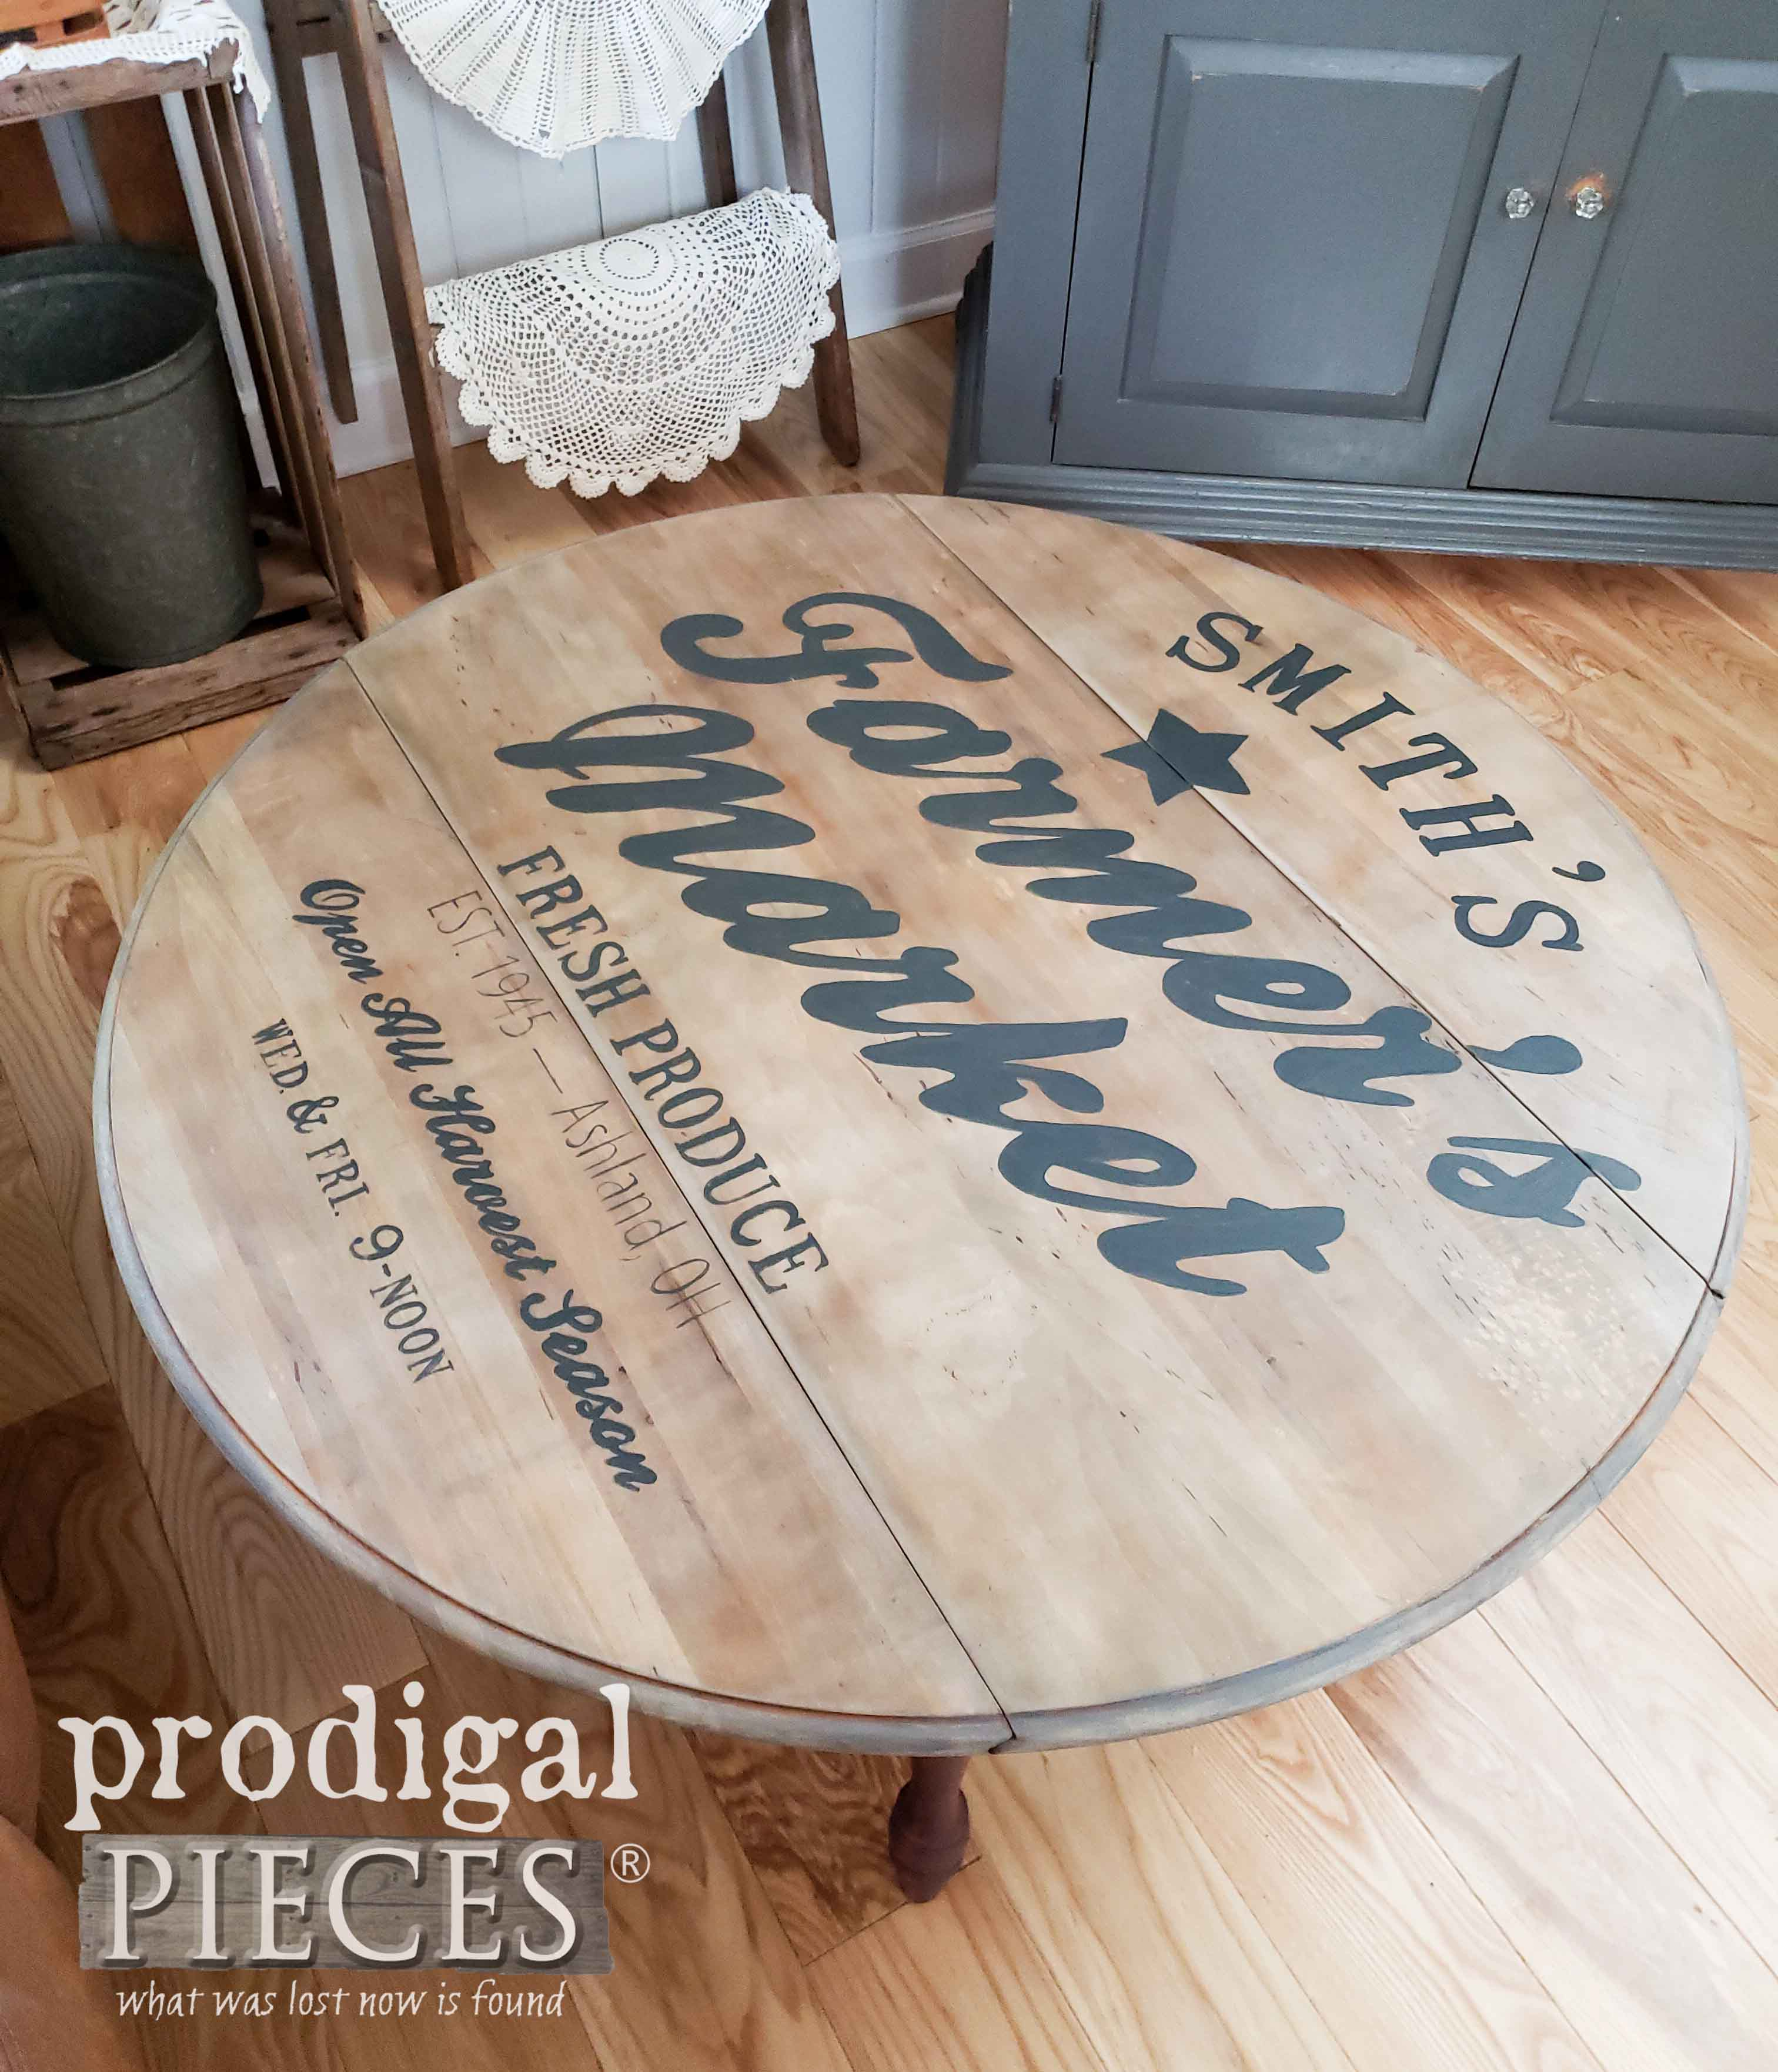 Farmer's Market Coffee Table for Farmhouse Decor by Larissa of Prodigal Pieces | prodigalpieces.com #prodigalpieces #diy #handmade #home #farmhouse #homedecor